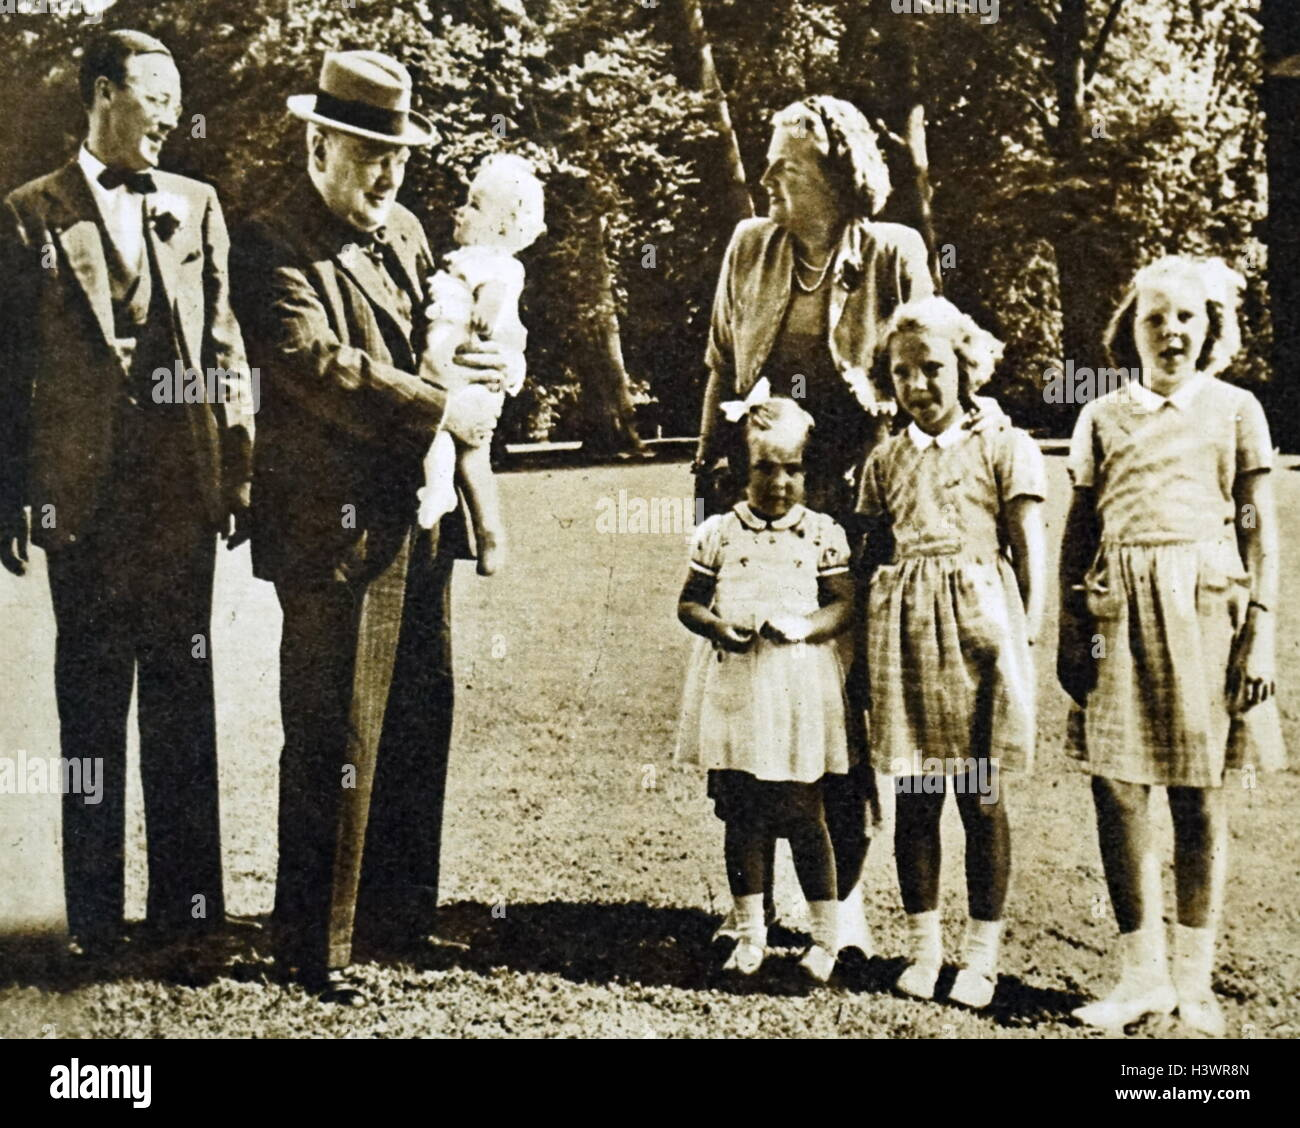 Photograph of Princess Juliana of the Netherlands (1909-2004), Sir Winston Churchill (1874-1965) and Prince Bernhard of Lippe-Biesterfeld (1911-2004) with their children. Dated 20th Century Stock Photo